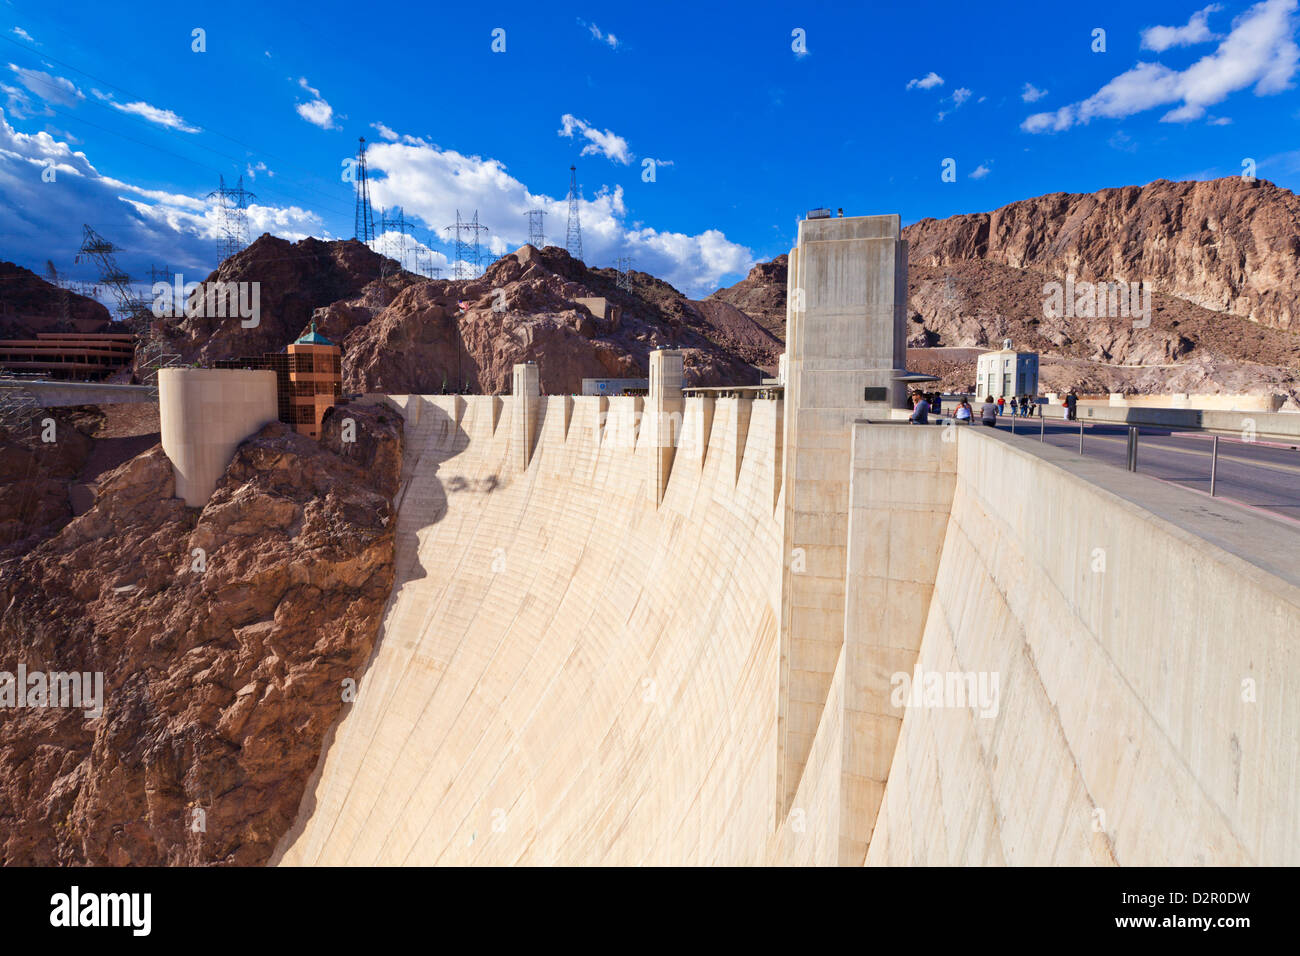 Le Barrage Hoover, mur, Boulder City, Nevada, États-Unis d'Amérique, Amérique du Nord Photo Stock